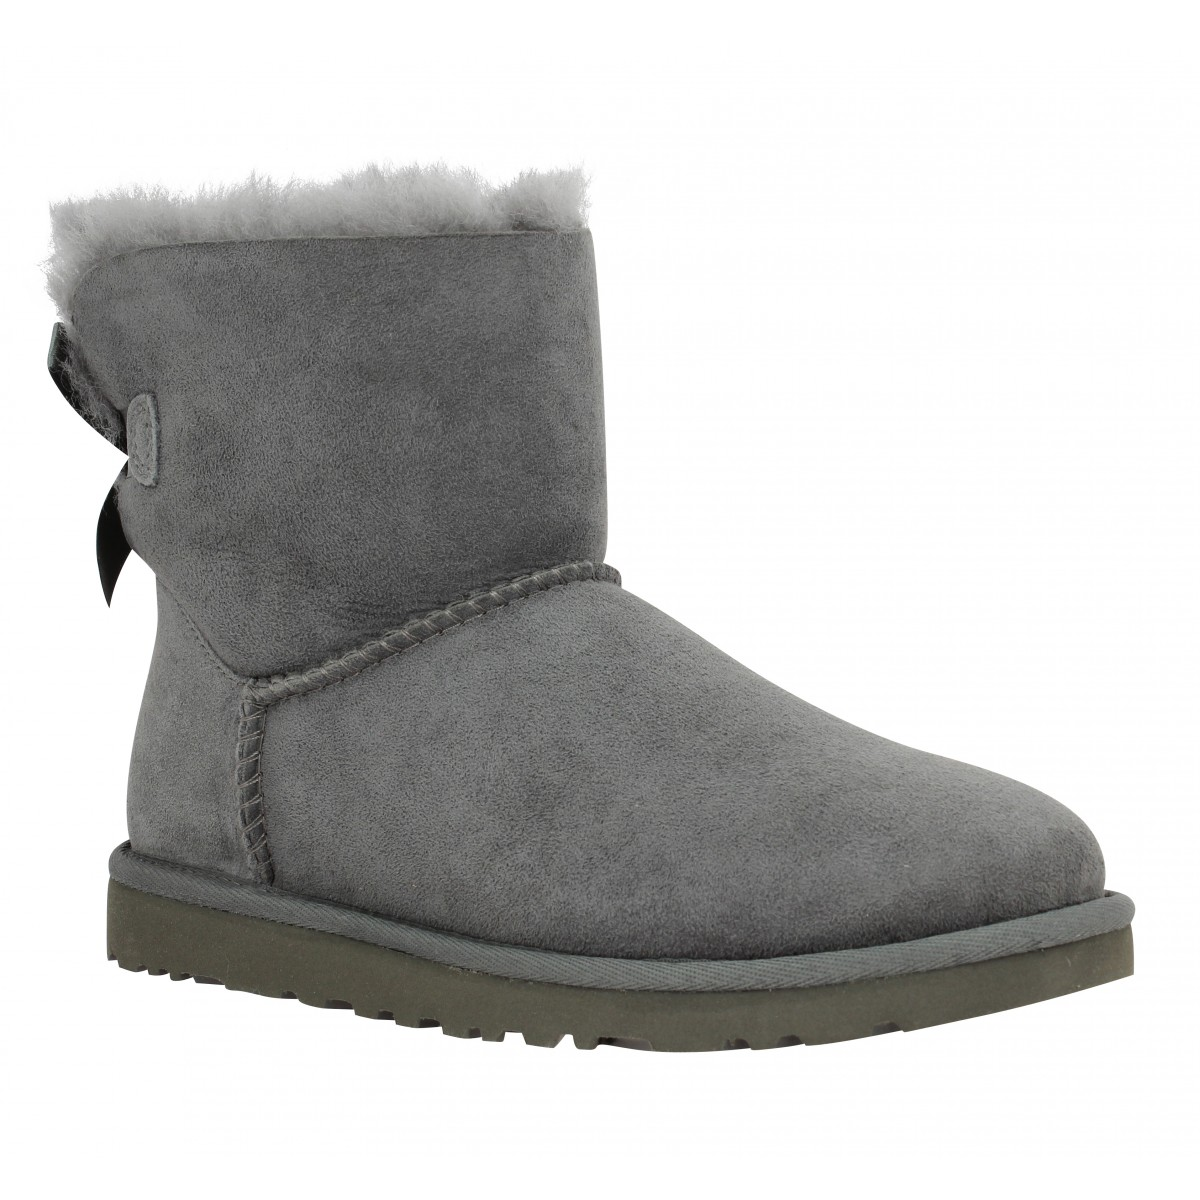 Bottines UGG AUSTRALIA Mini Bailey Bow velours Femme Gris